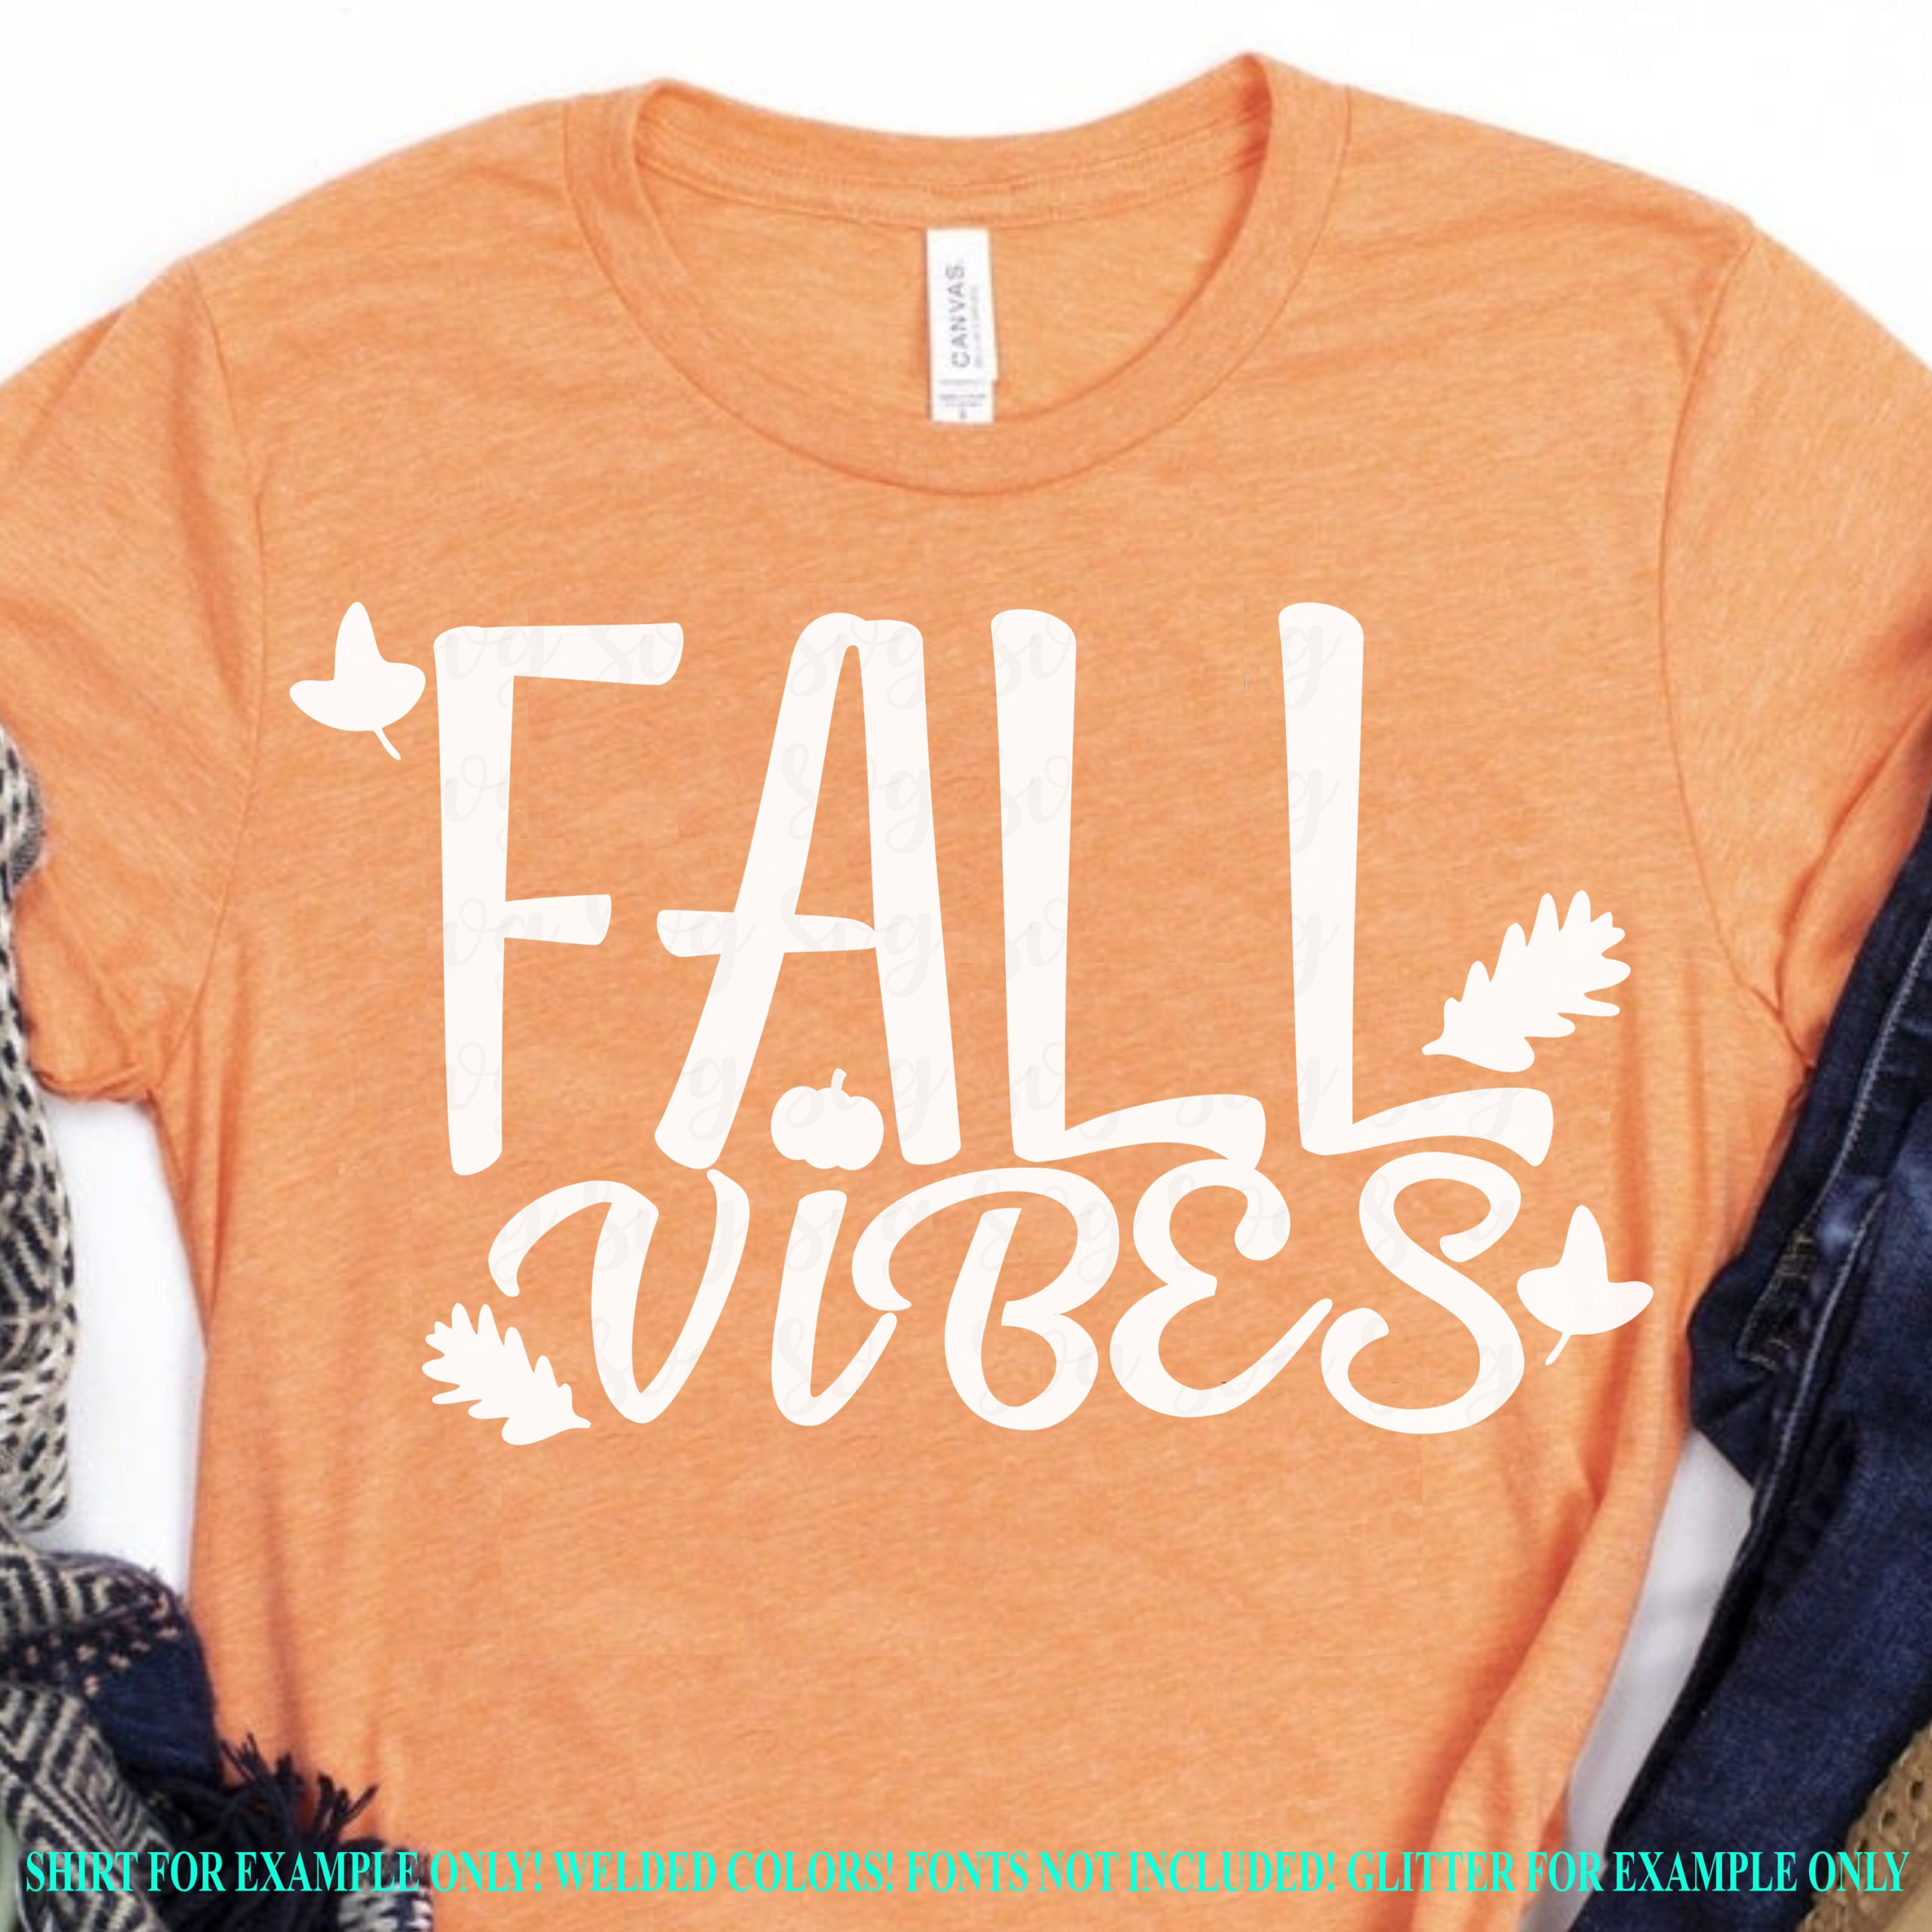 Fall-vibes-svg-fall-svg-falling-leaves-svg-fall-svg-pumpkins-svg-sweater-weather-svg-fall-svg-designcricut-svgsvg-for-mobile-5f6f7107